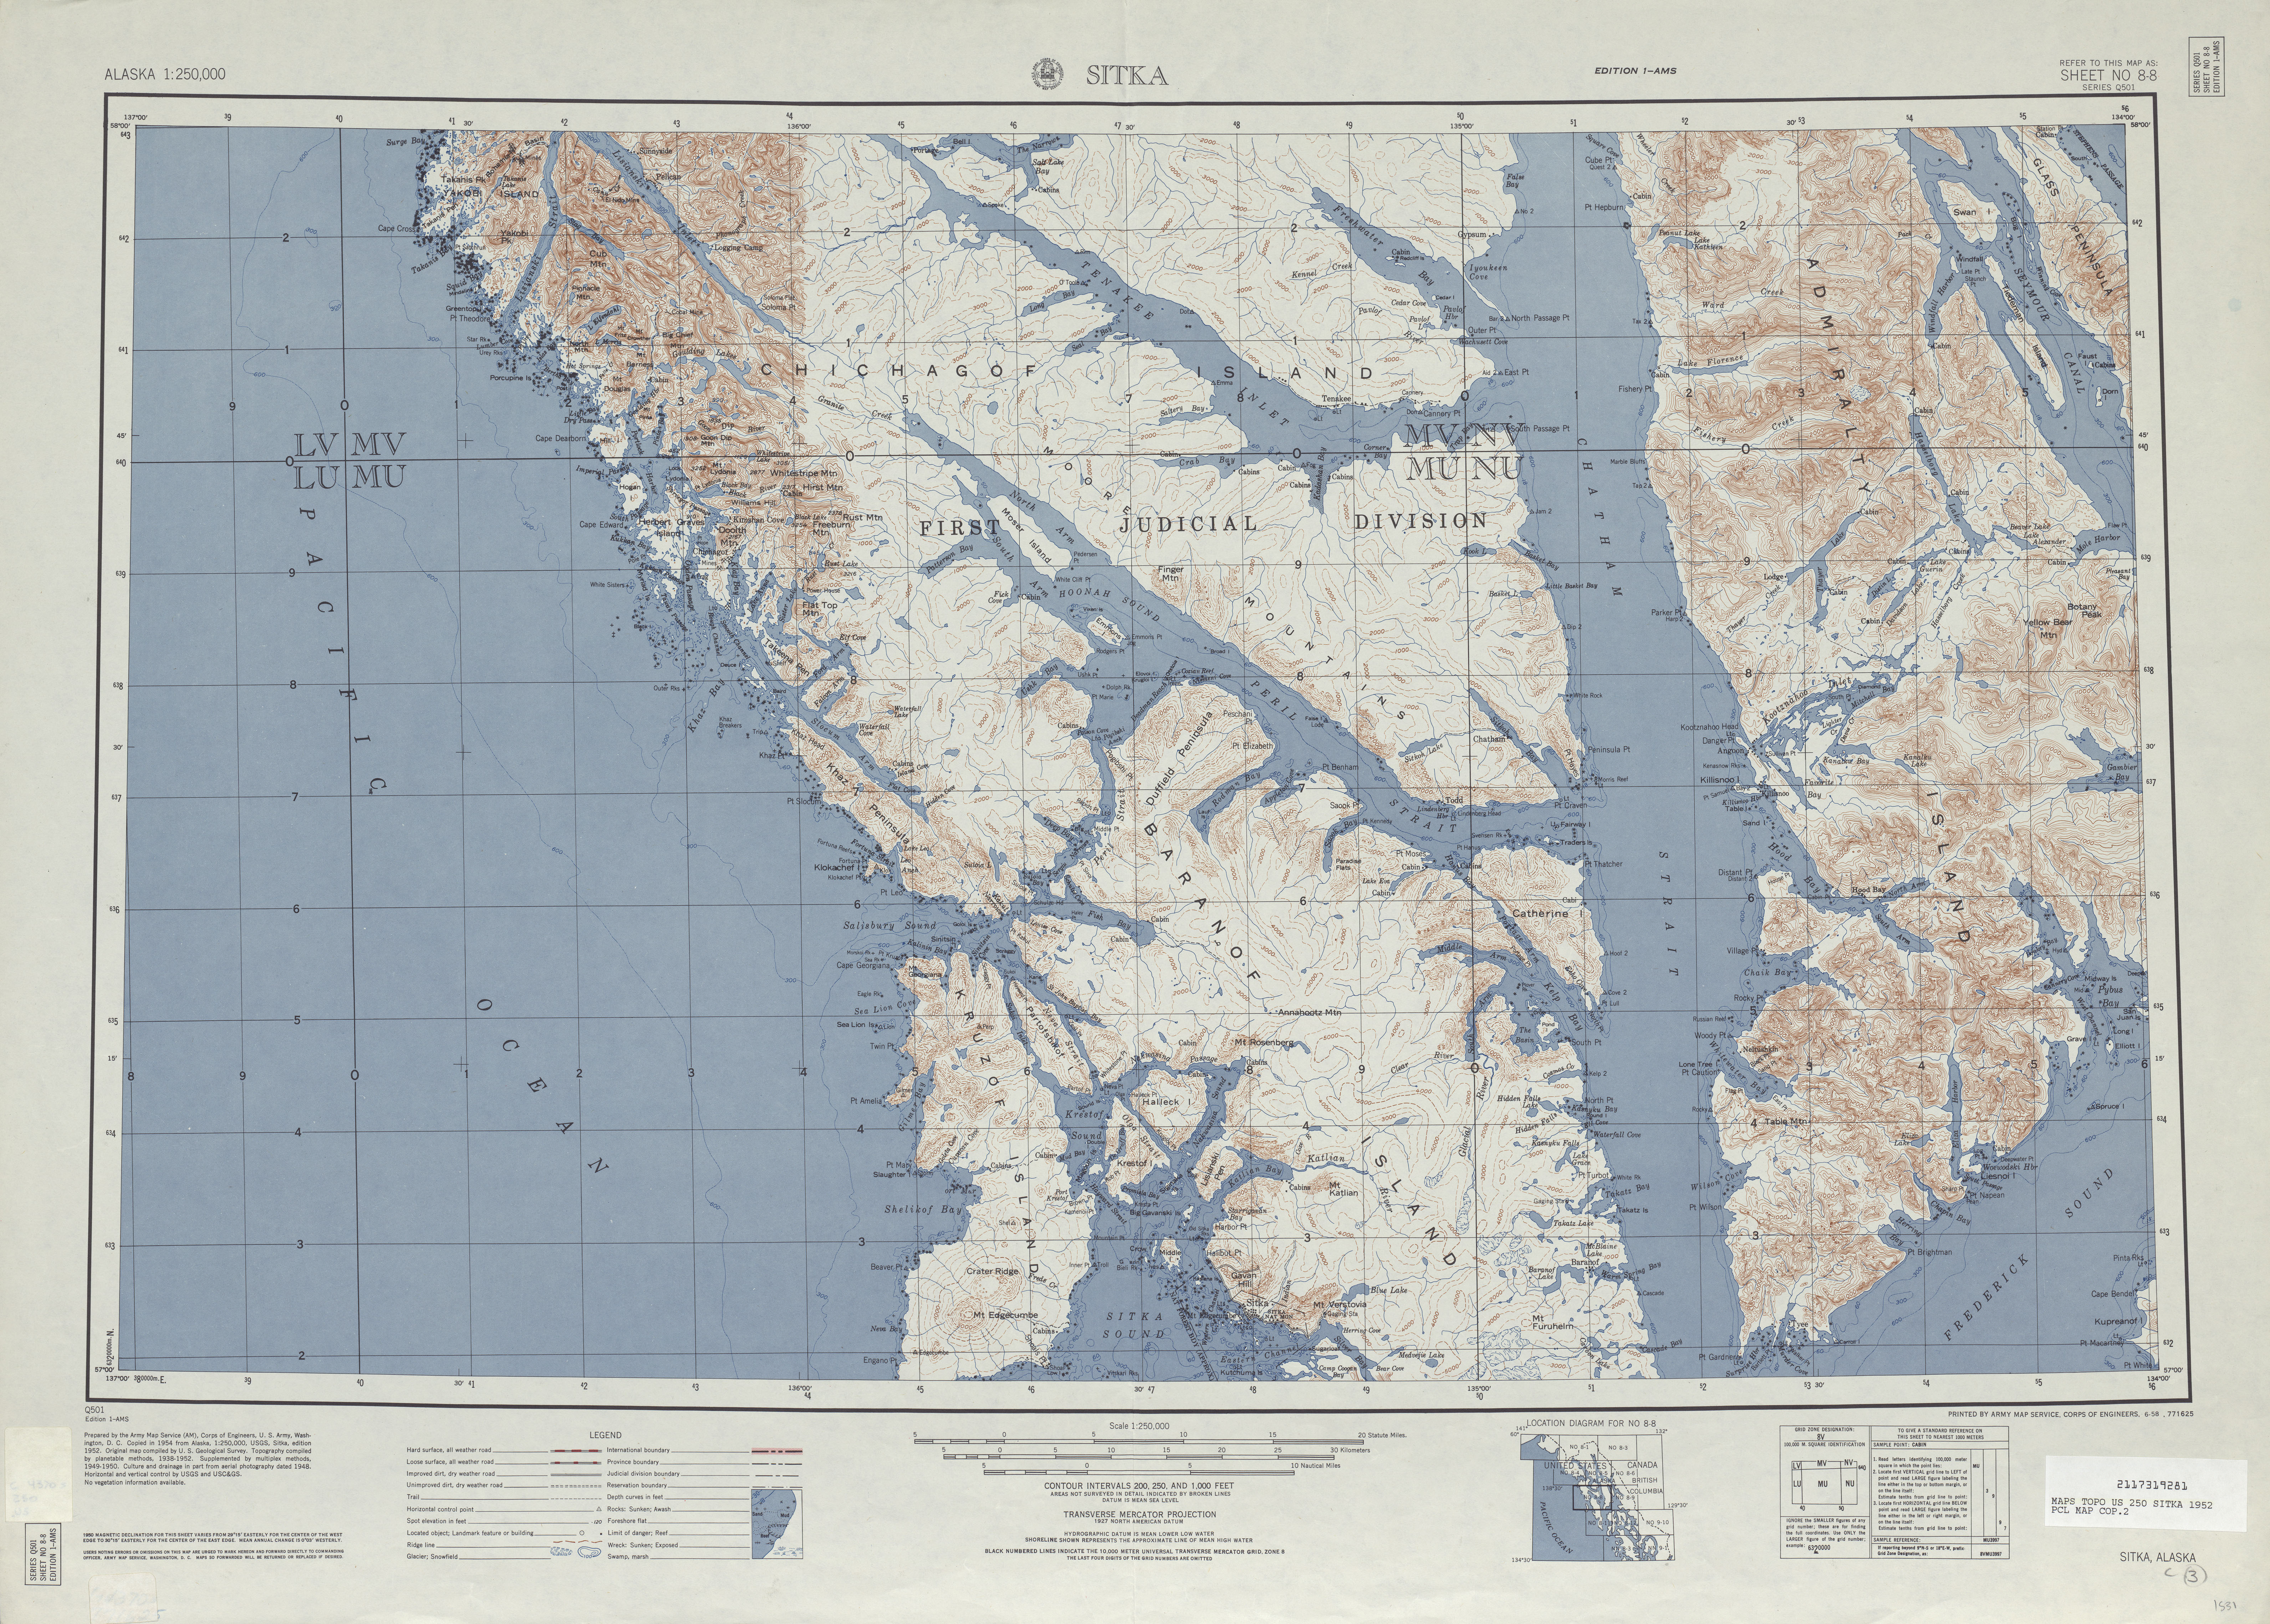 Sitka Topographic Map Sheet, United States 1952